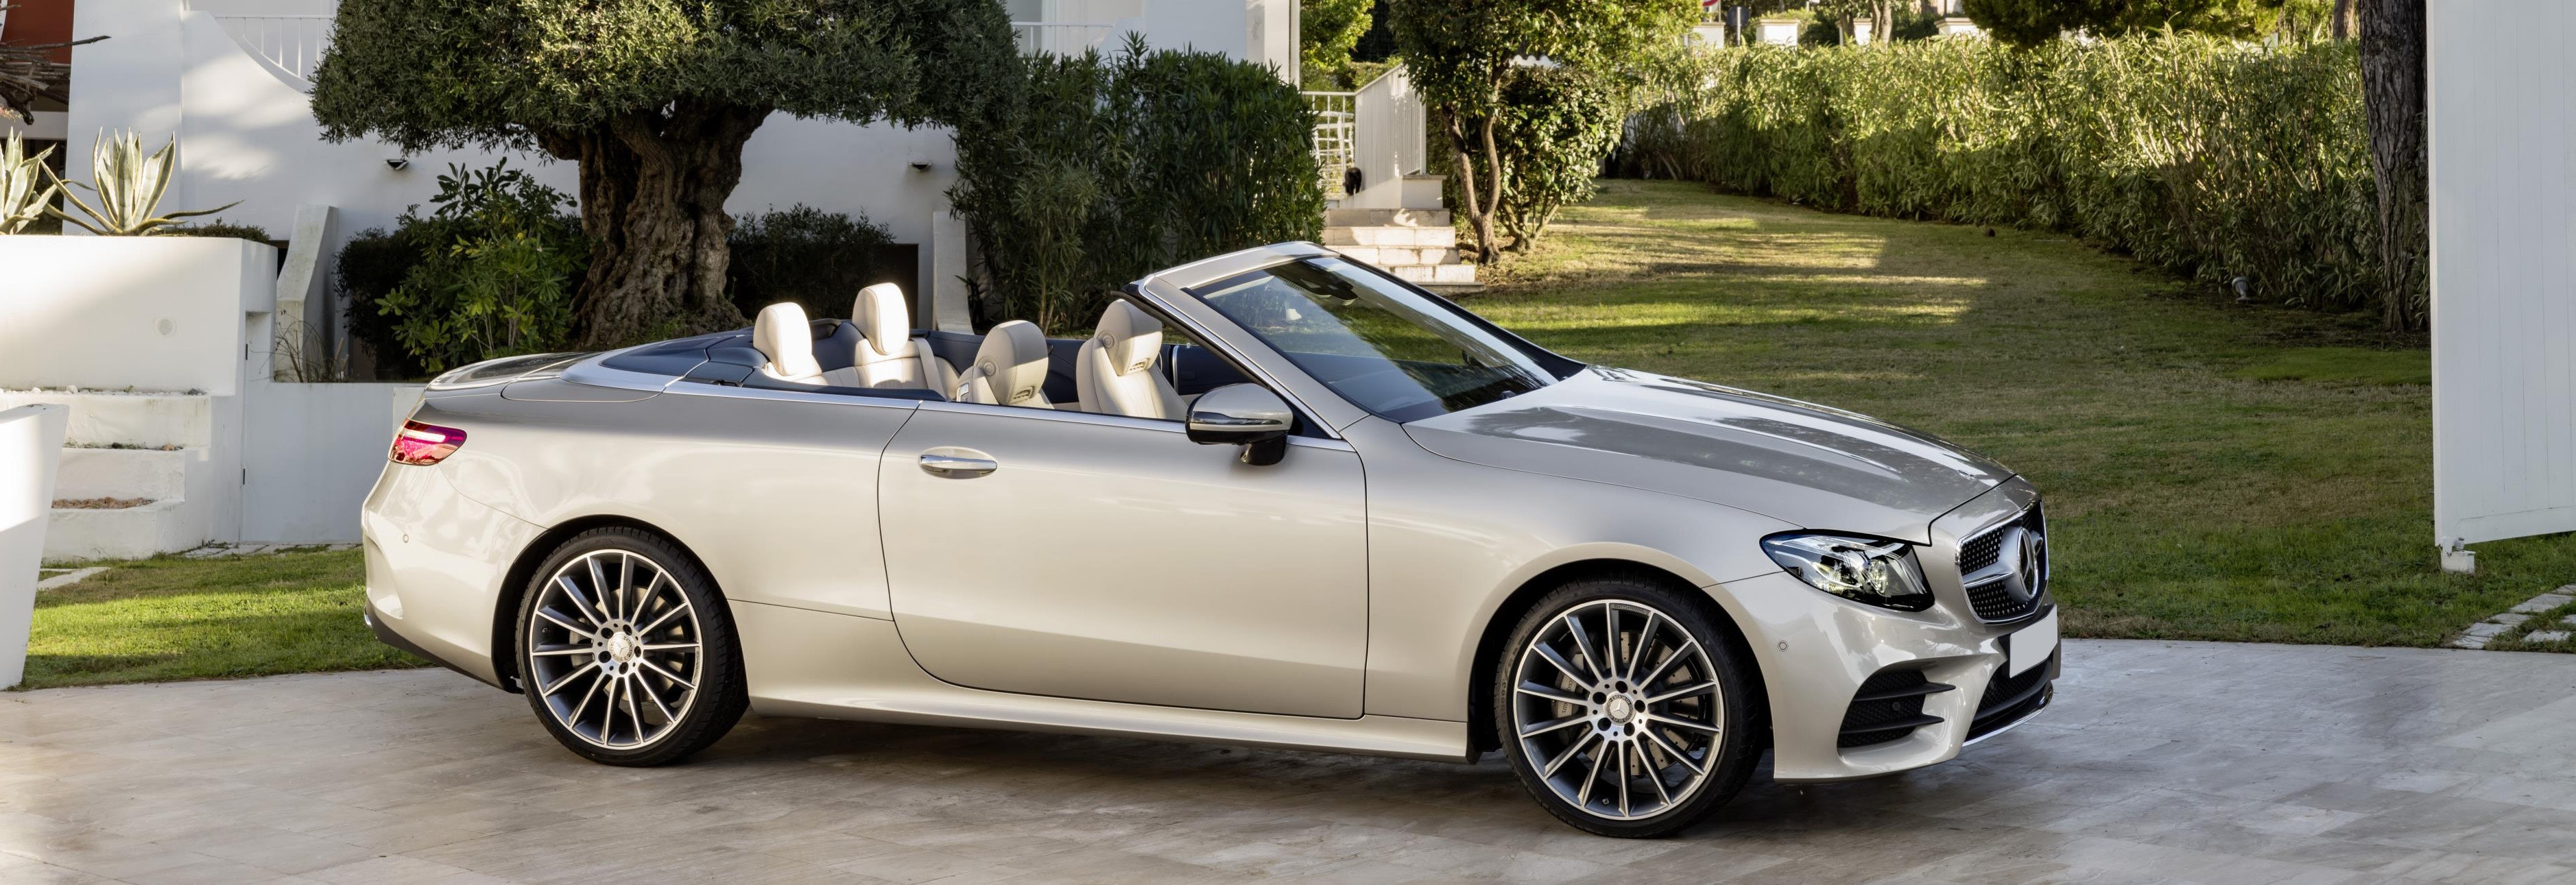 The Best 4 Seater Convertibles Amp Cabriolets On Sale Carwow